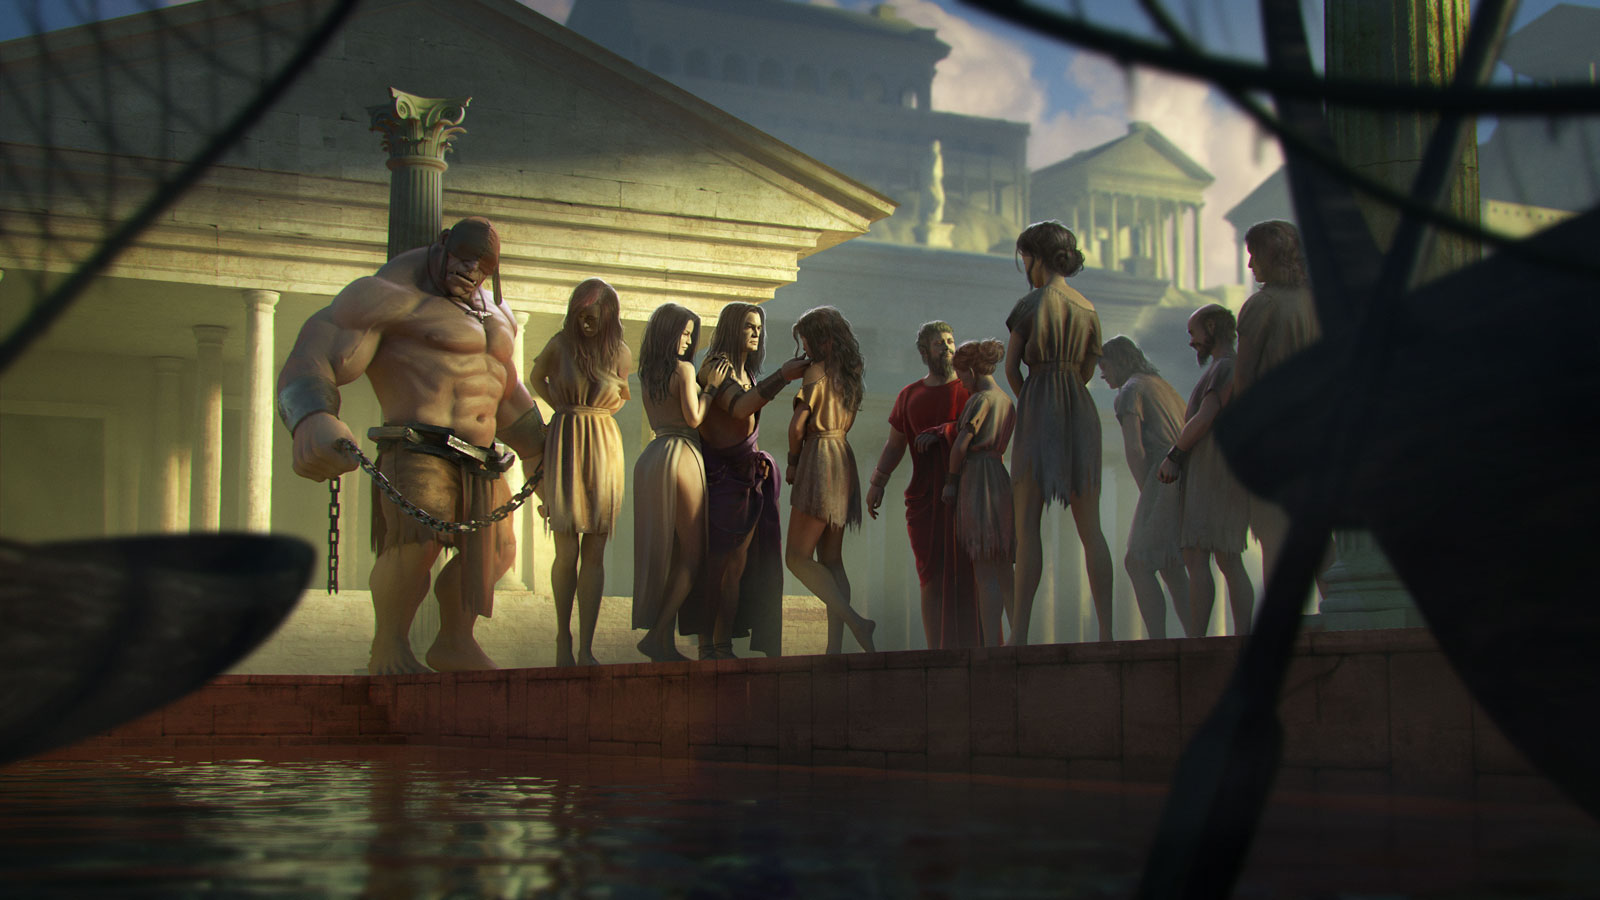 The Slave Docks - The Slaver inspects his new shipments, Korvina at his side, the fearsome Thrall in the background watches his charge, Lazarus' Wife